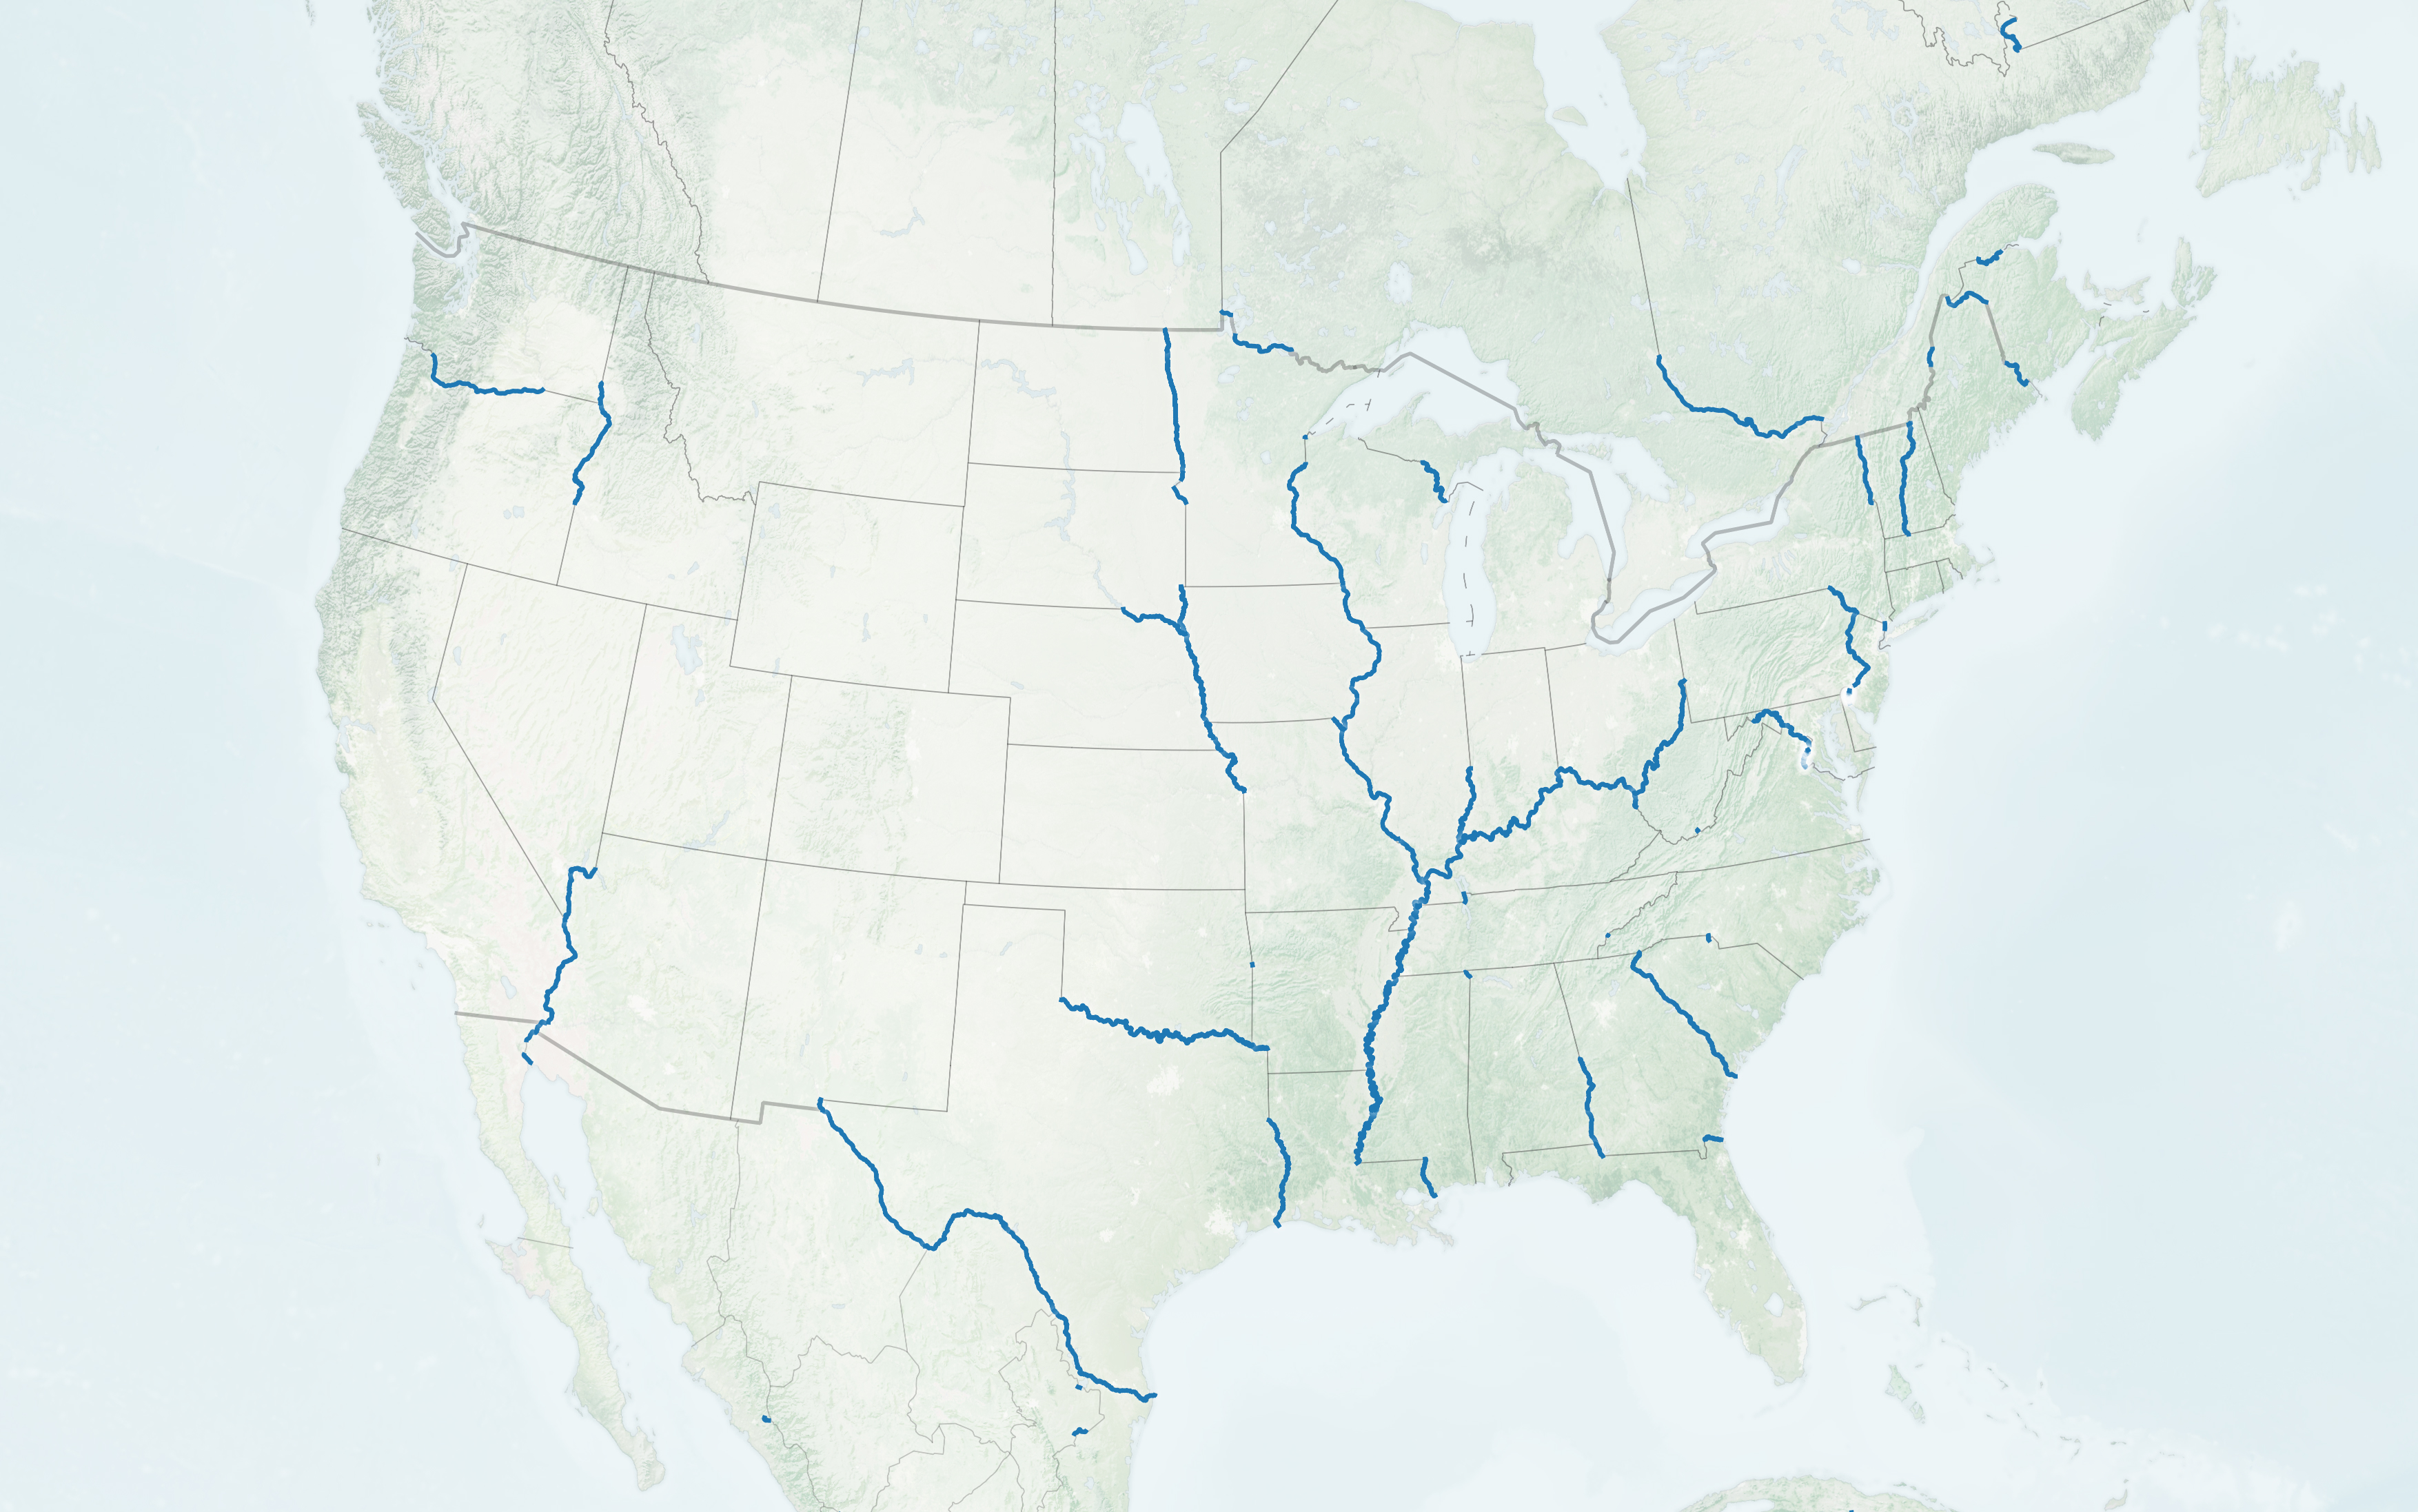 It's free to use for any purpose. How Rivers Shape States